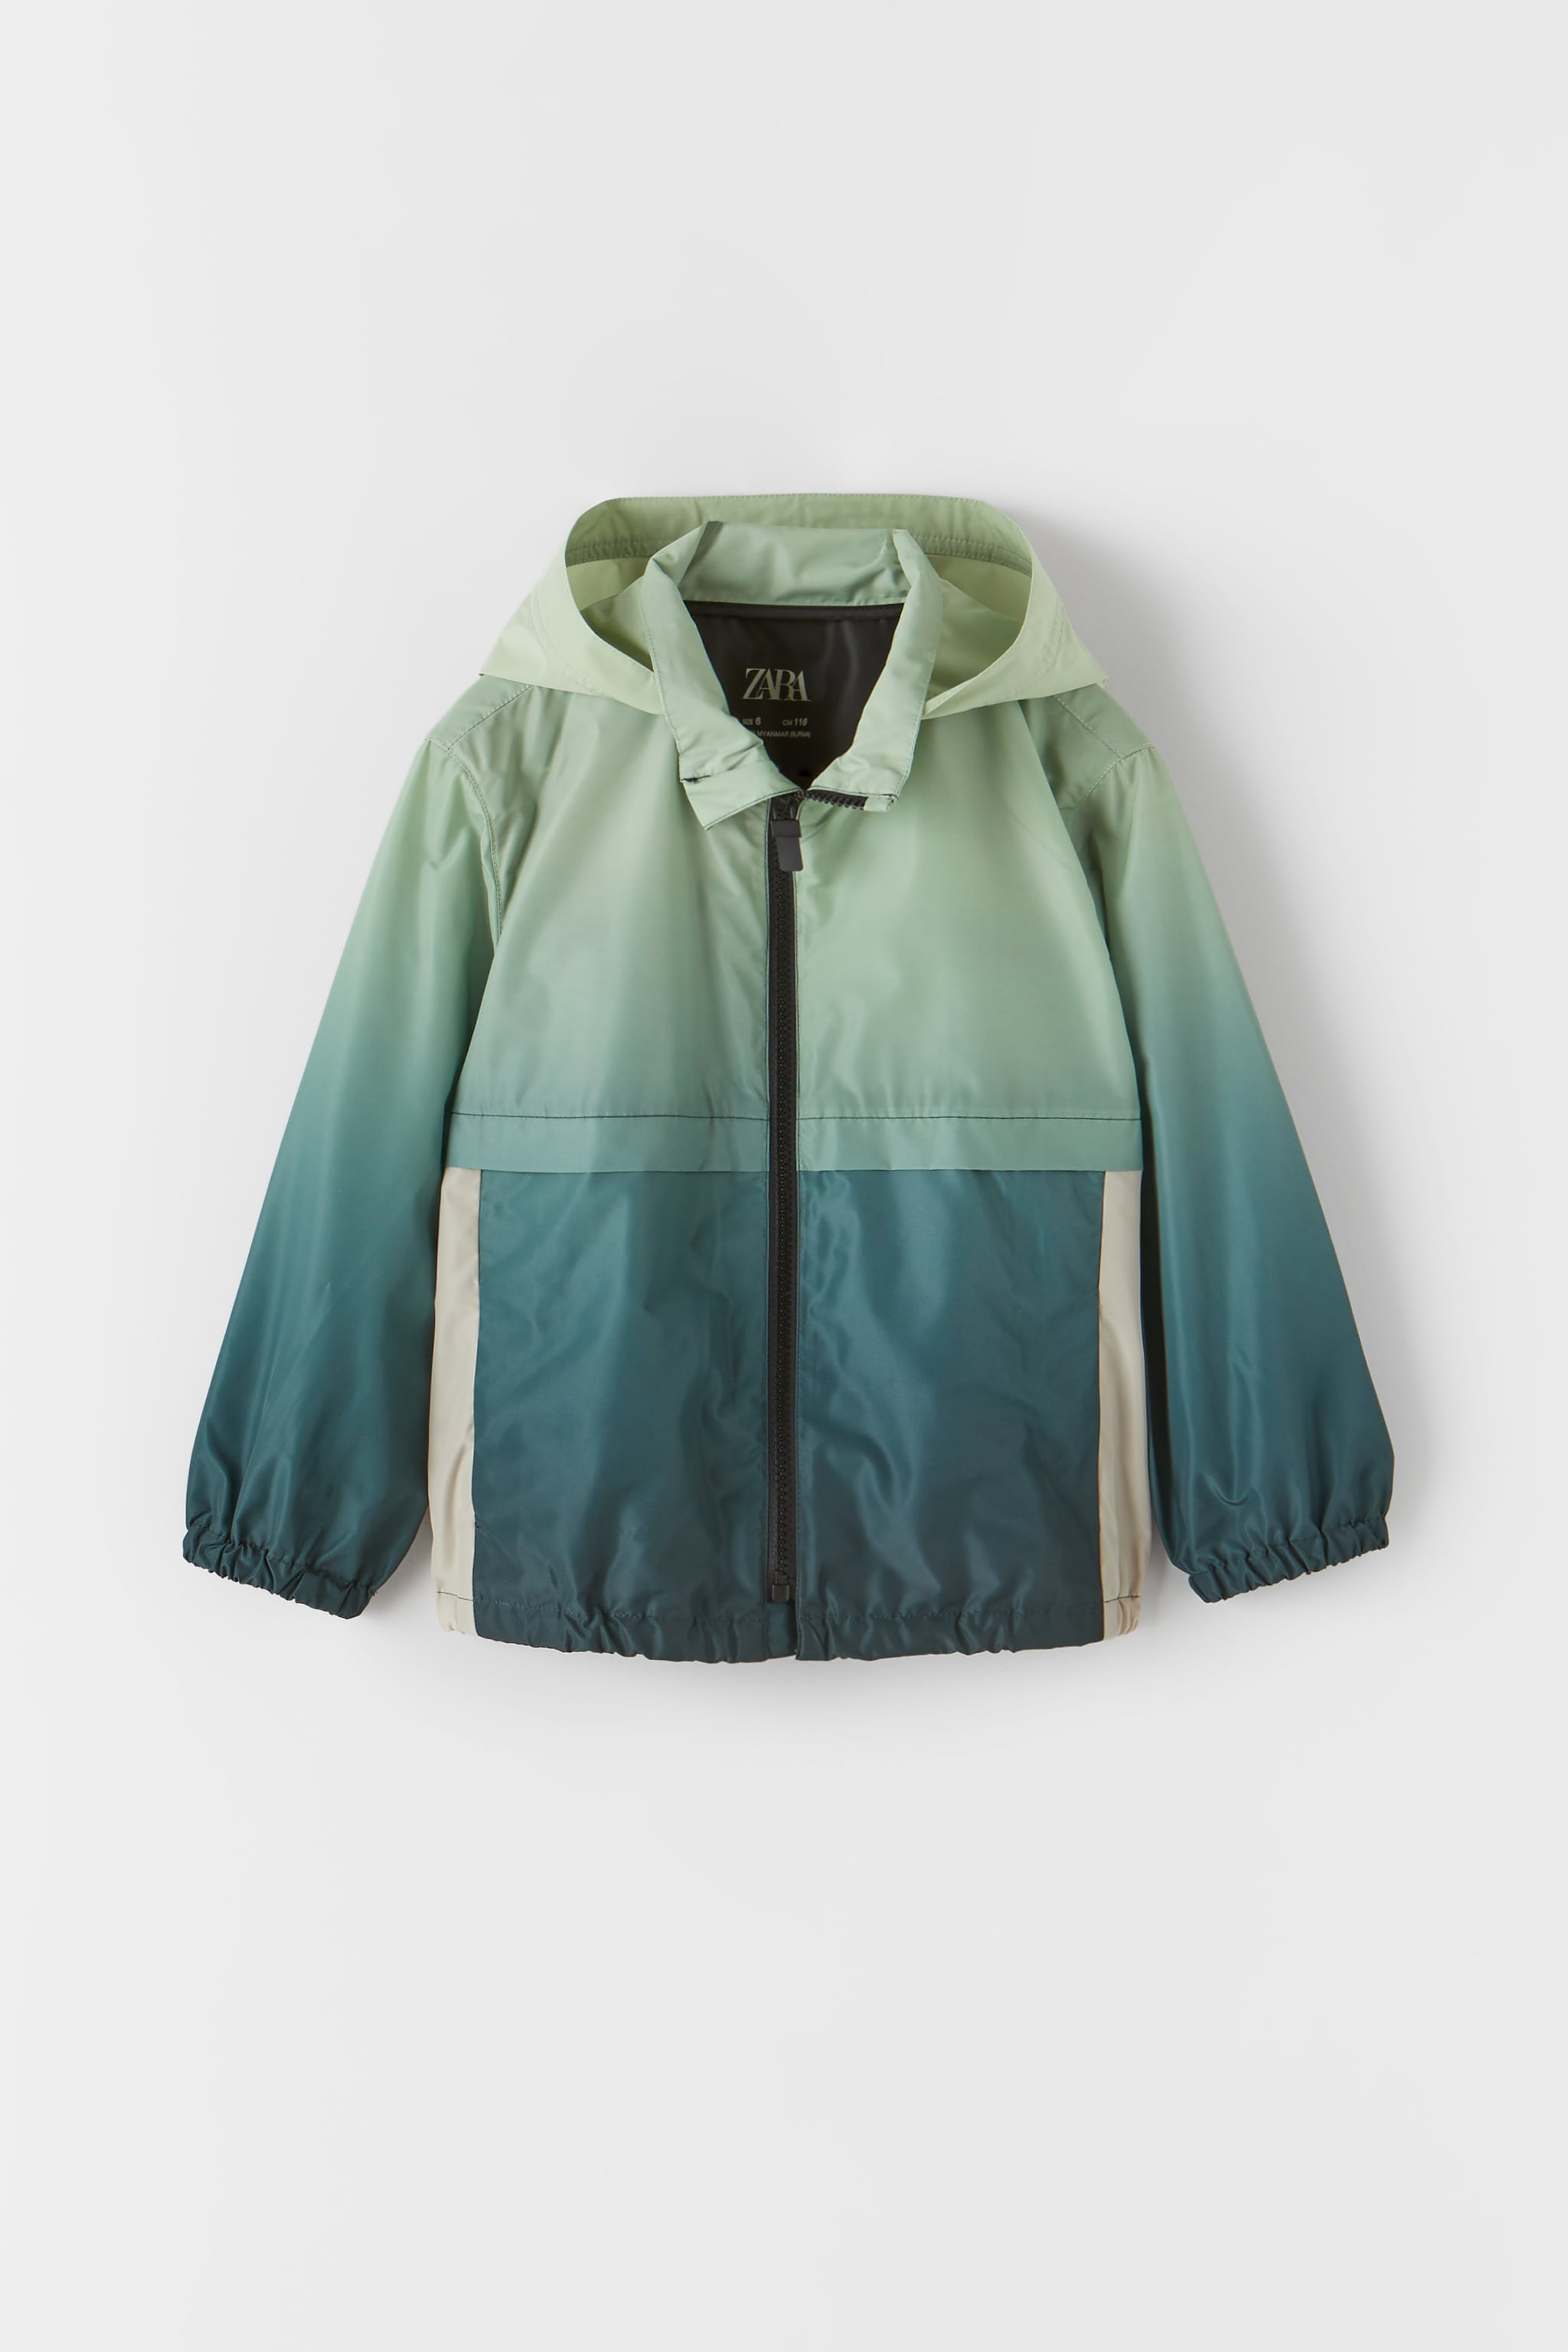 Zara LIGHTWEIGHT OMBRE RAINCOAT